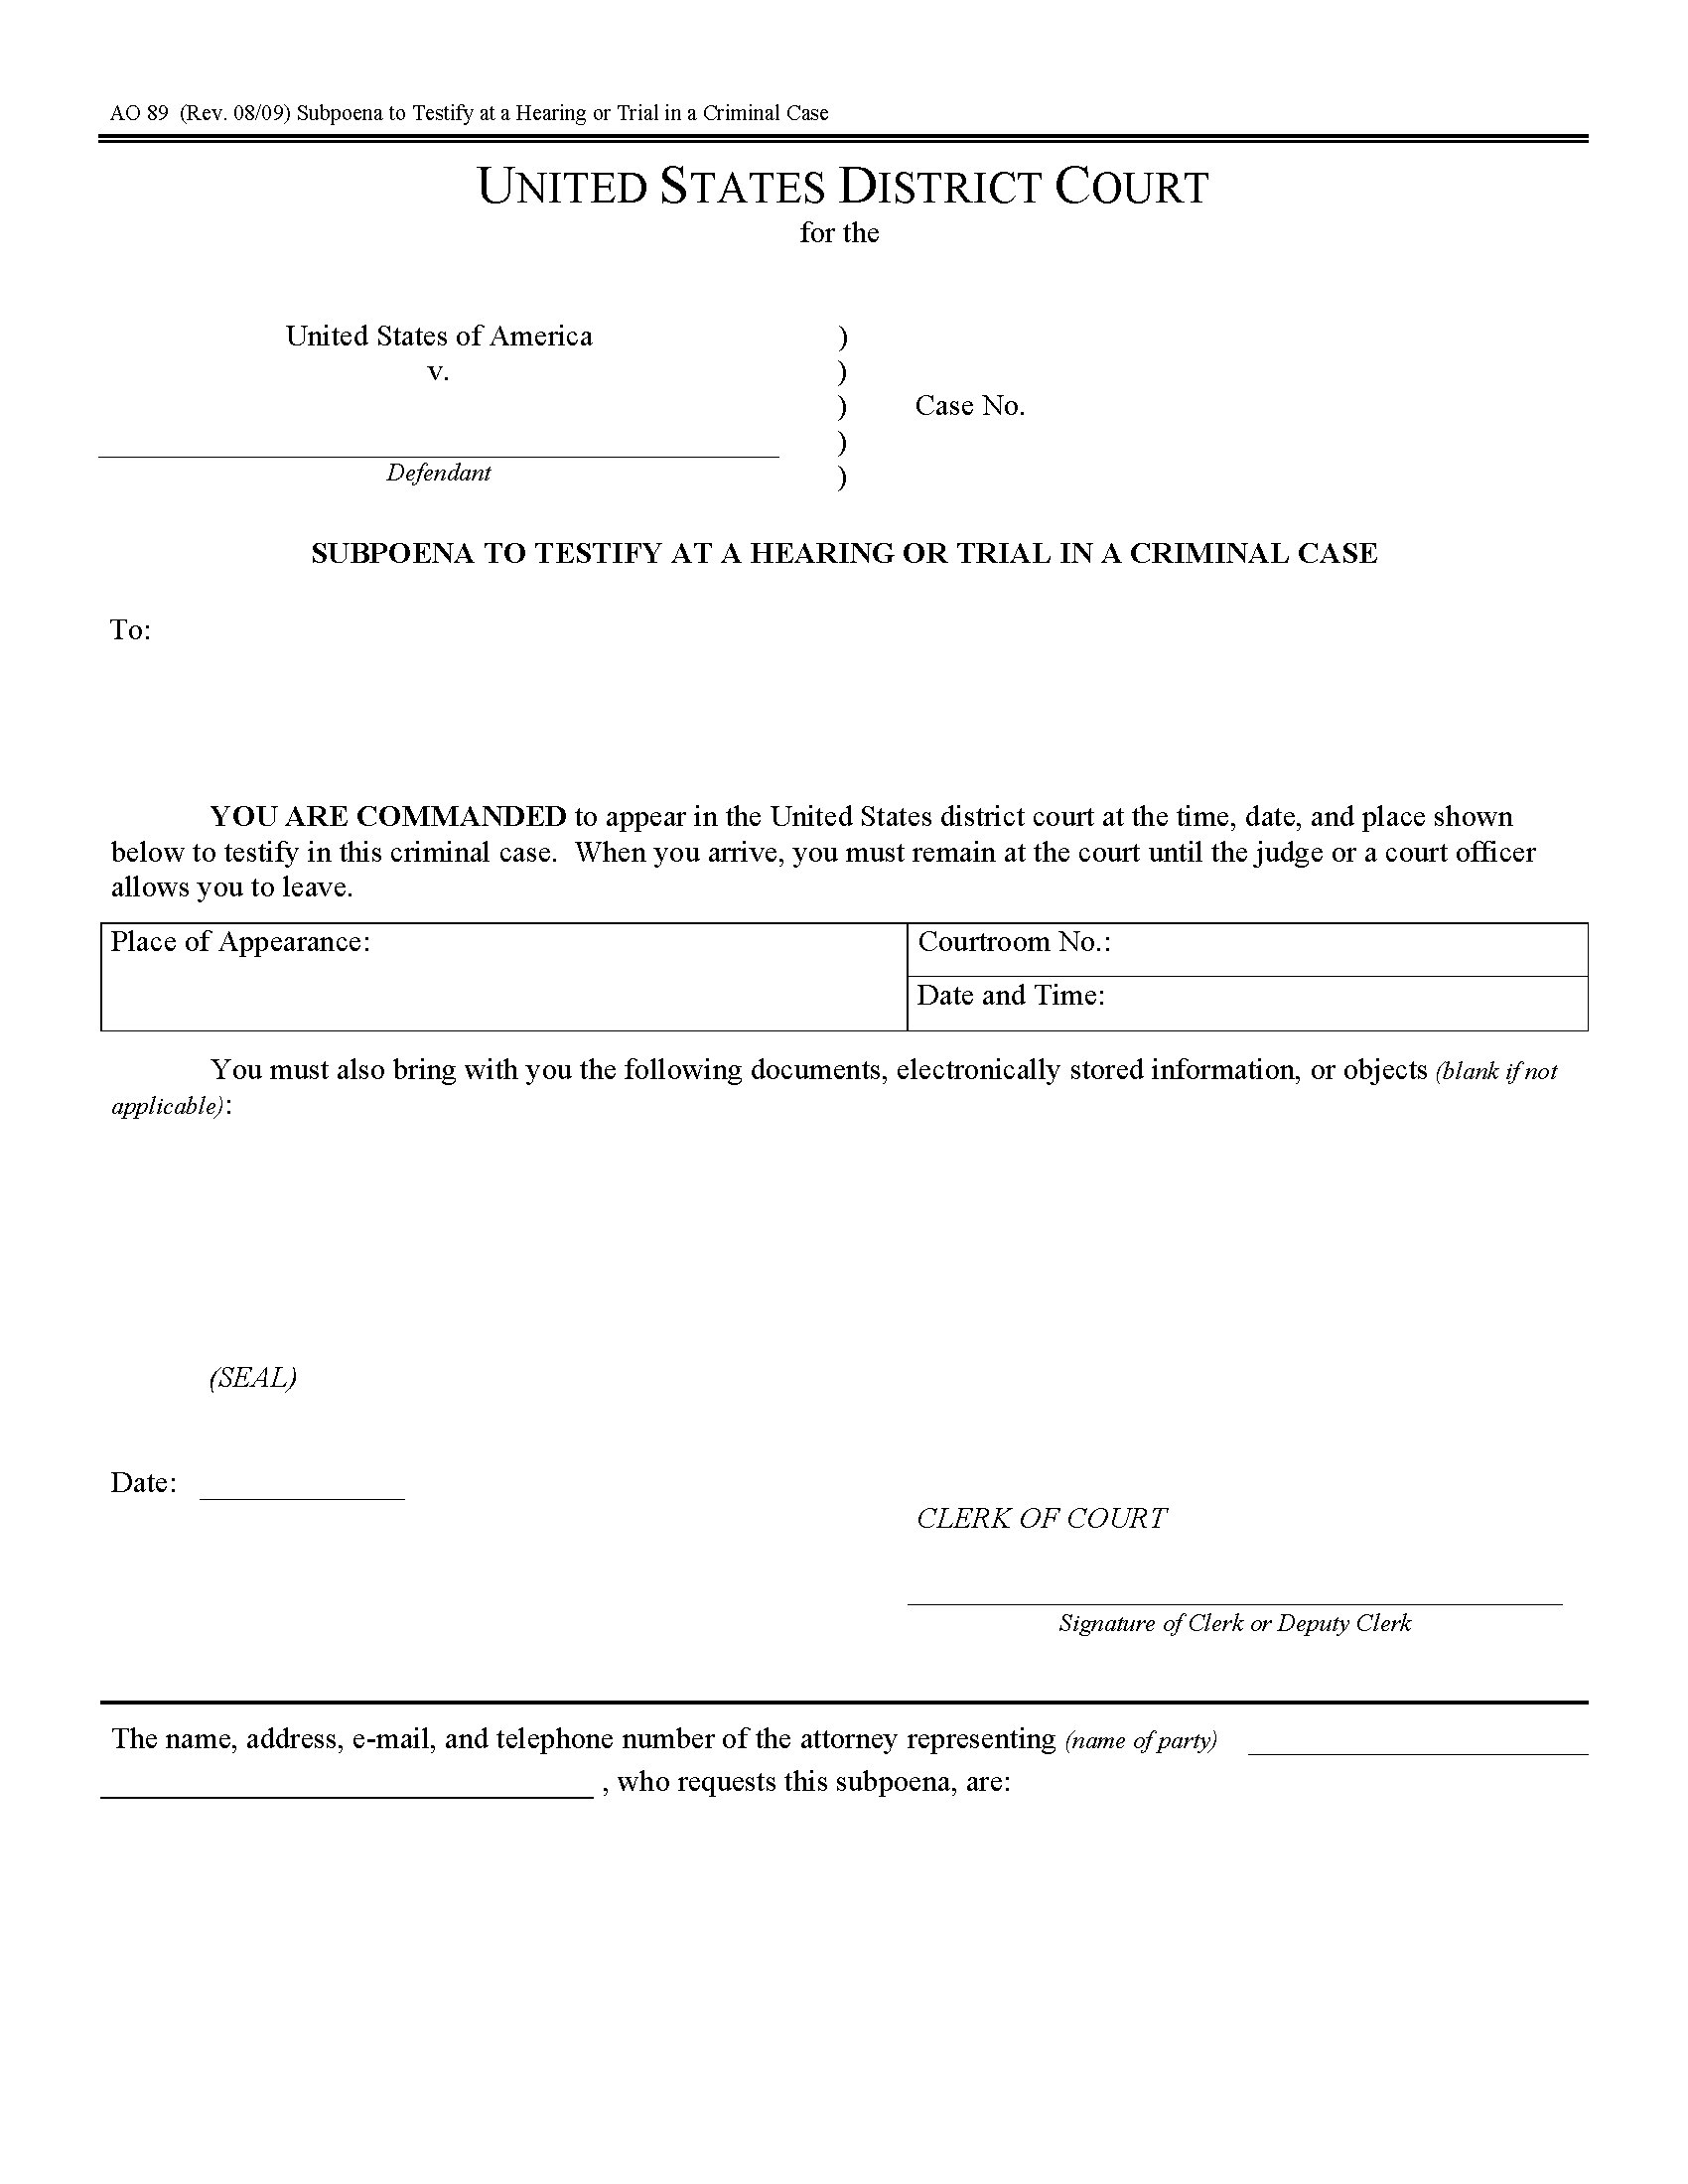 Usa Subpoena To Testify At Hearing Or Trial Form Ao 89